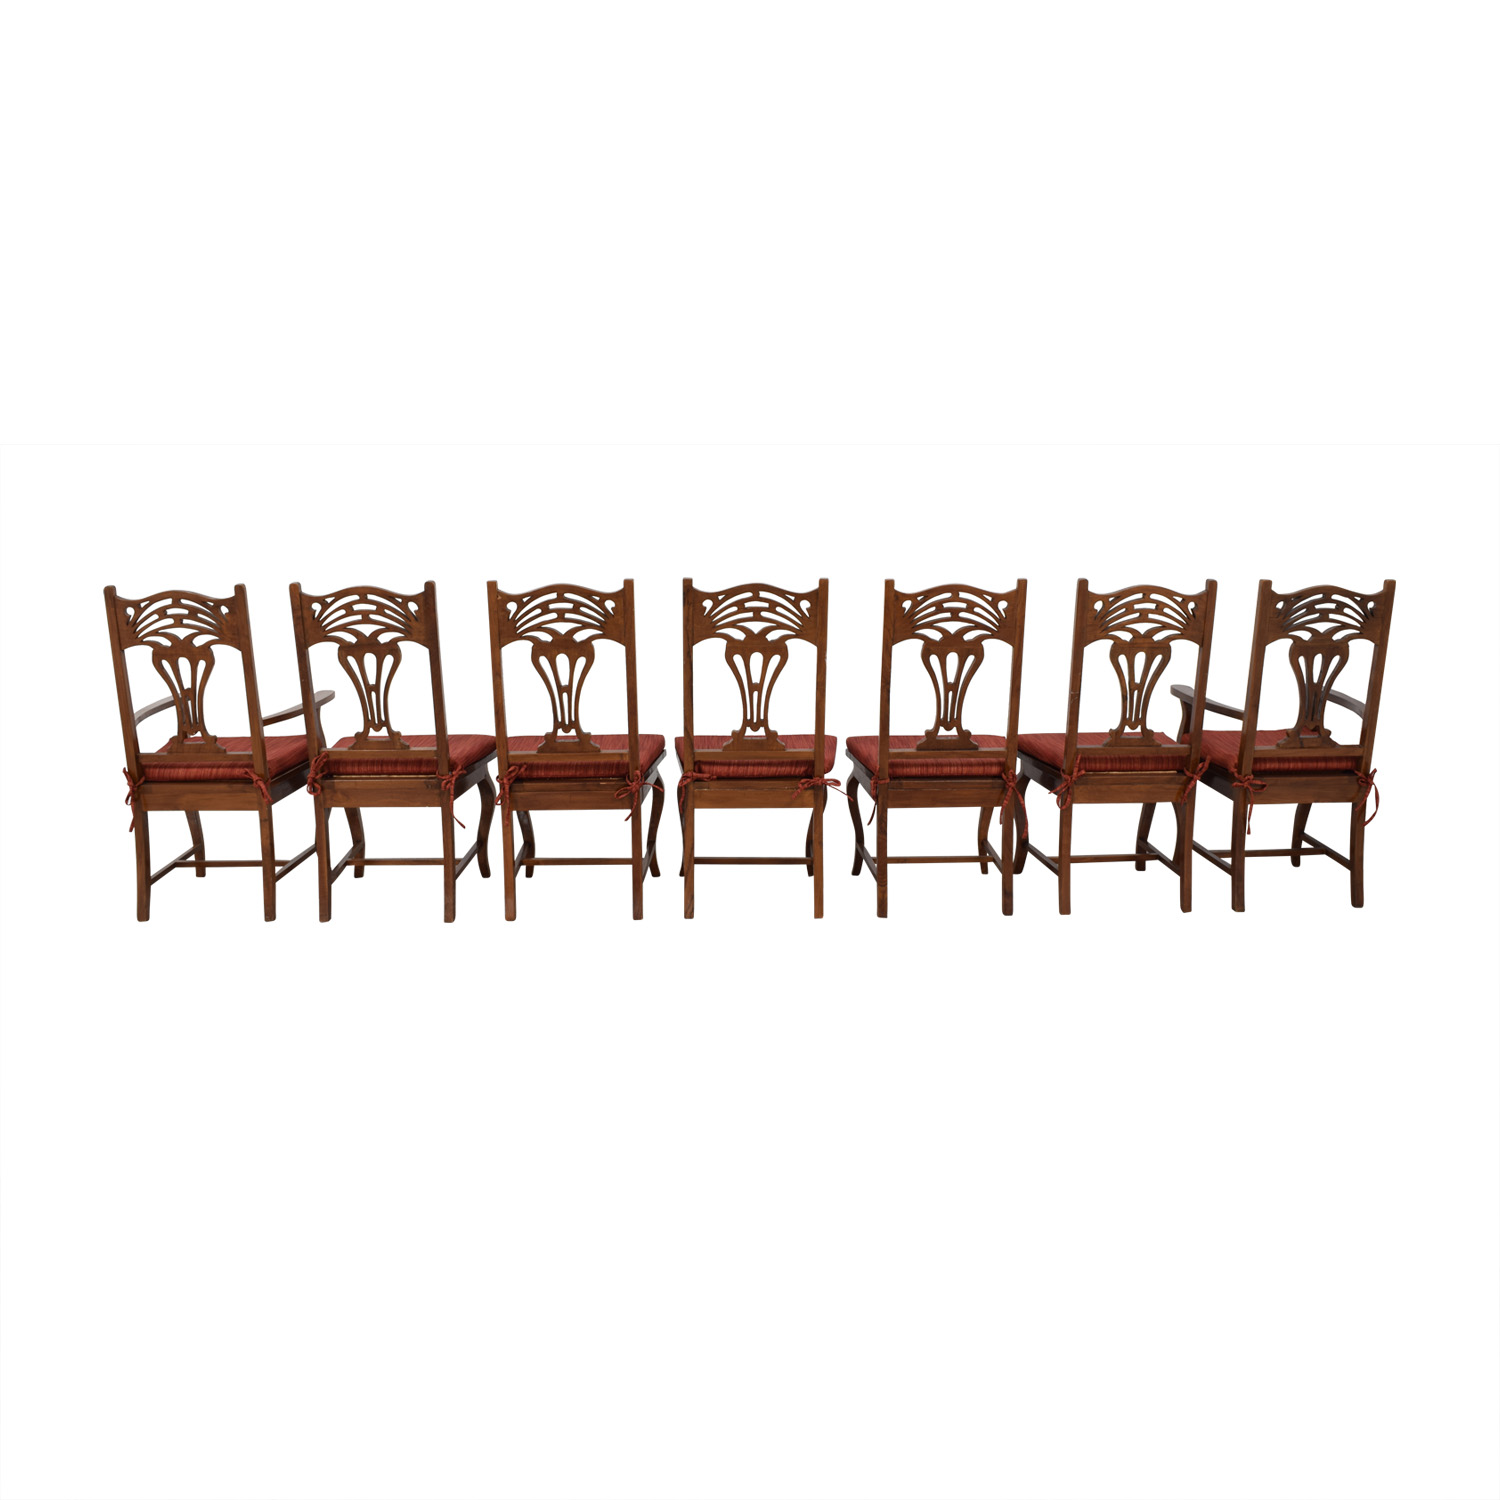 Custom Set of Dining Room Chairs / Dining Chairs